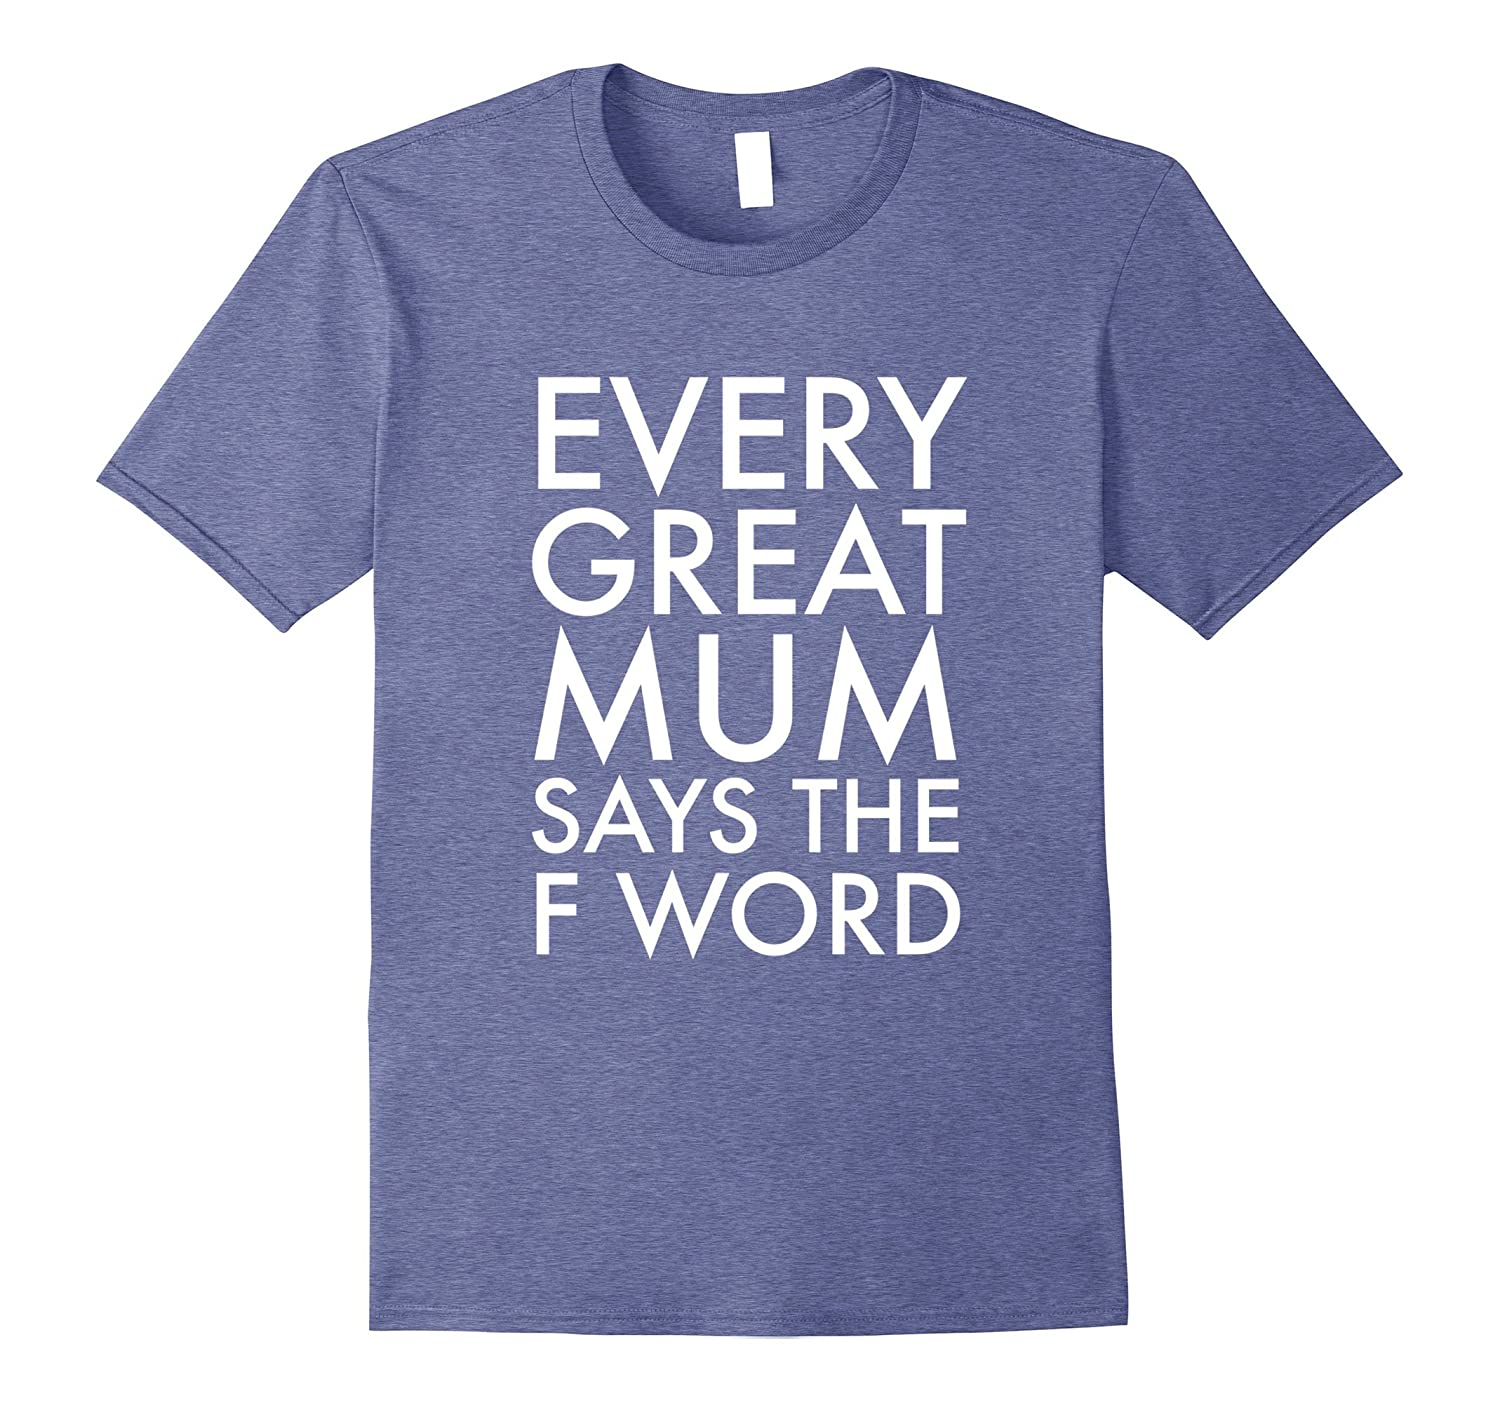 Every Great Mum Says The F Word Funny British Shirt For Mums-TH